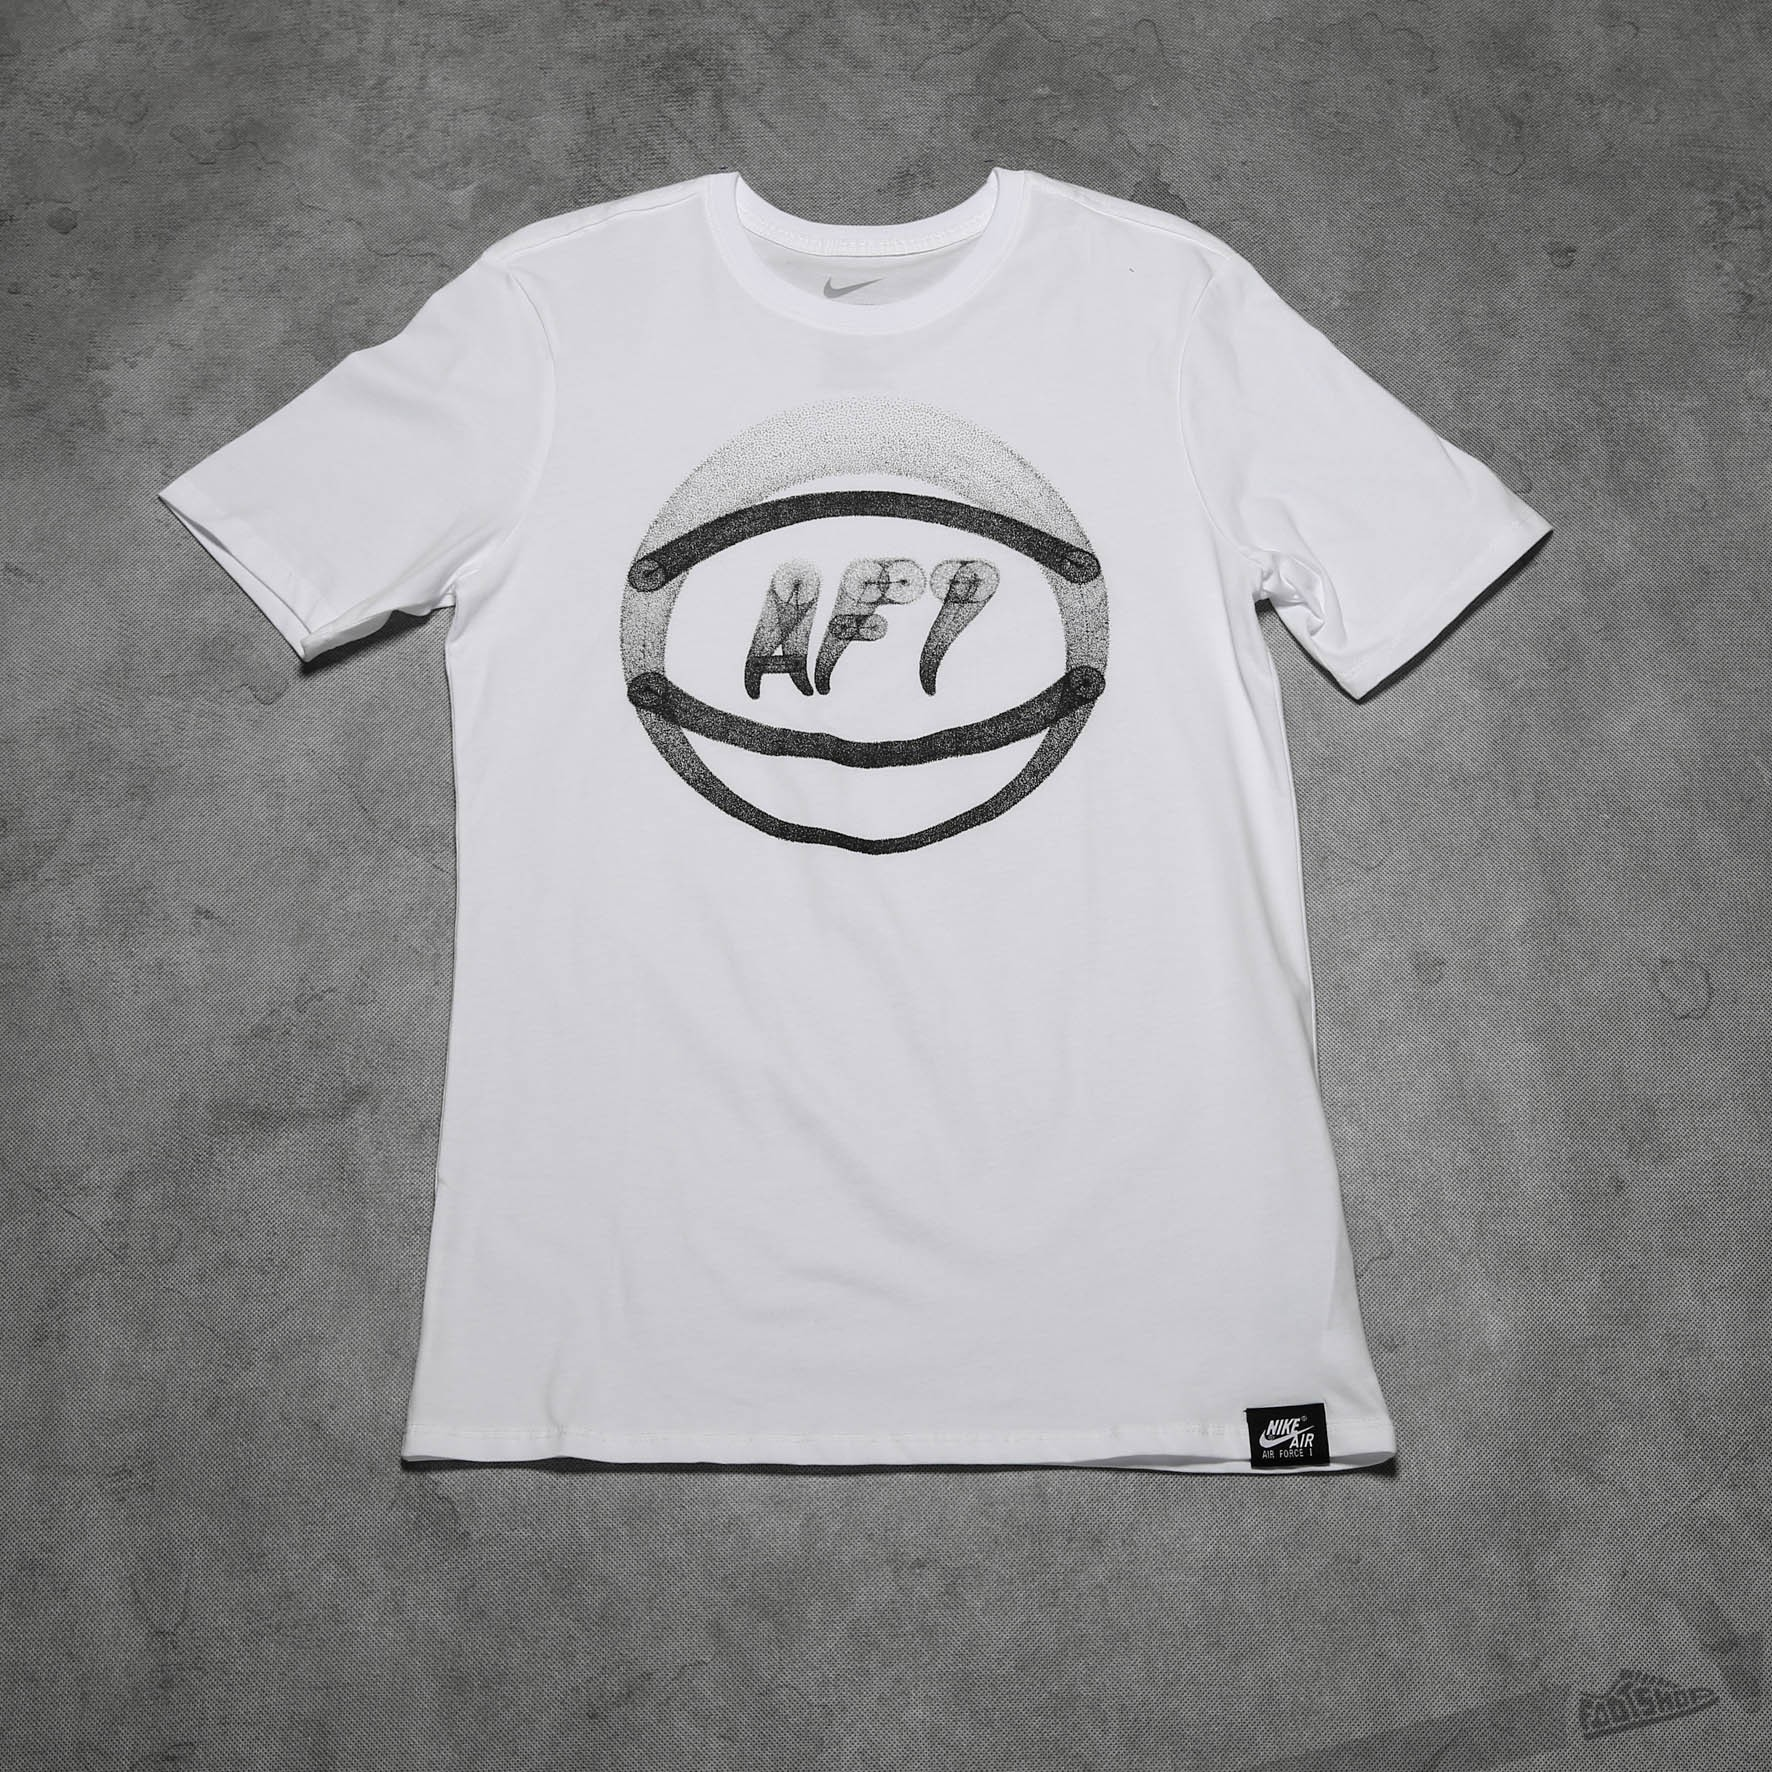 Nike Air force 1 Ball Art Tee White